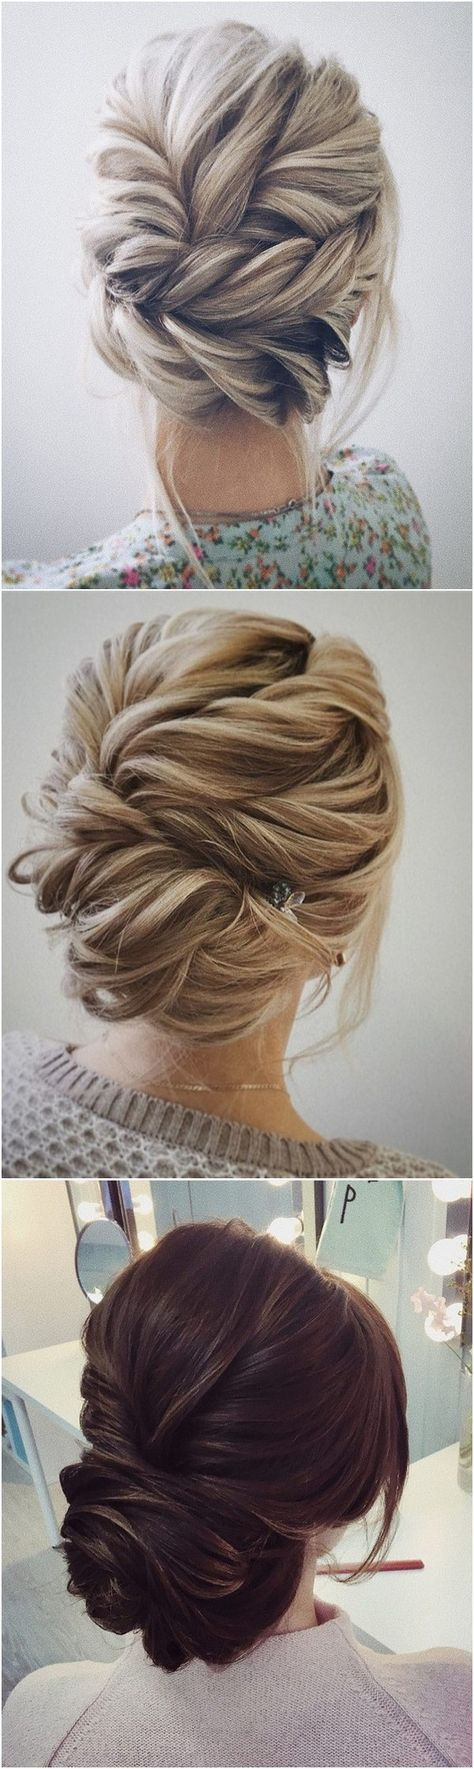 Top wedding hairstyles for trends page of hairstyle